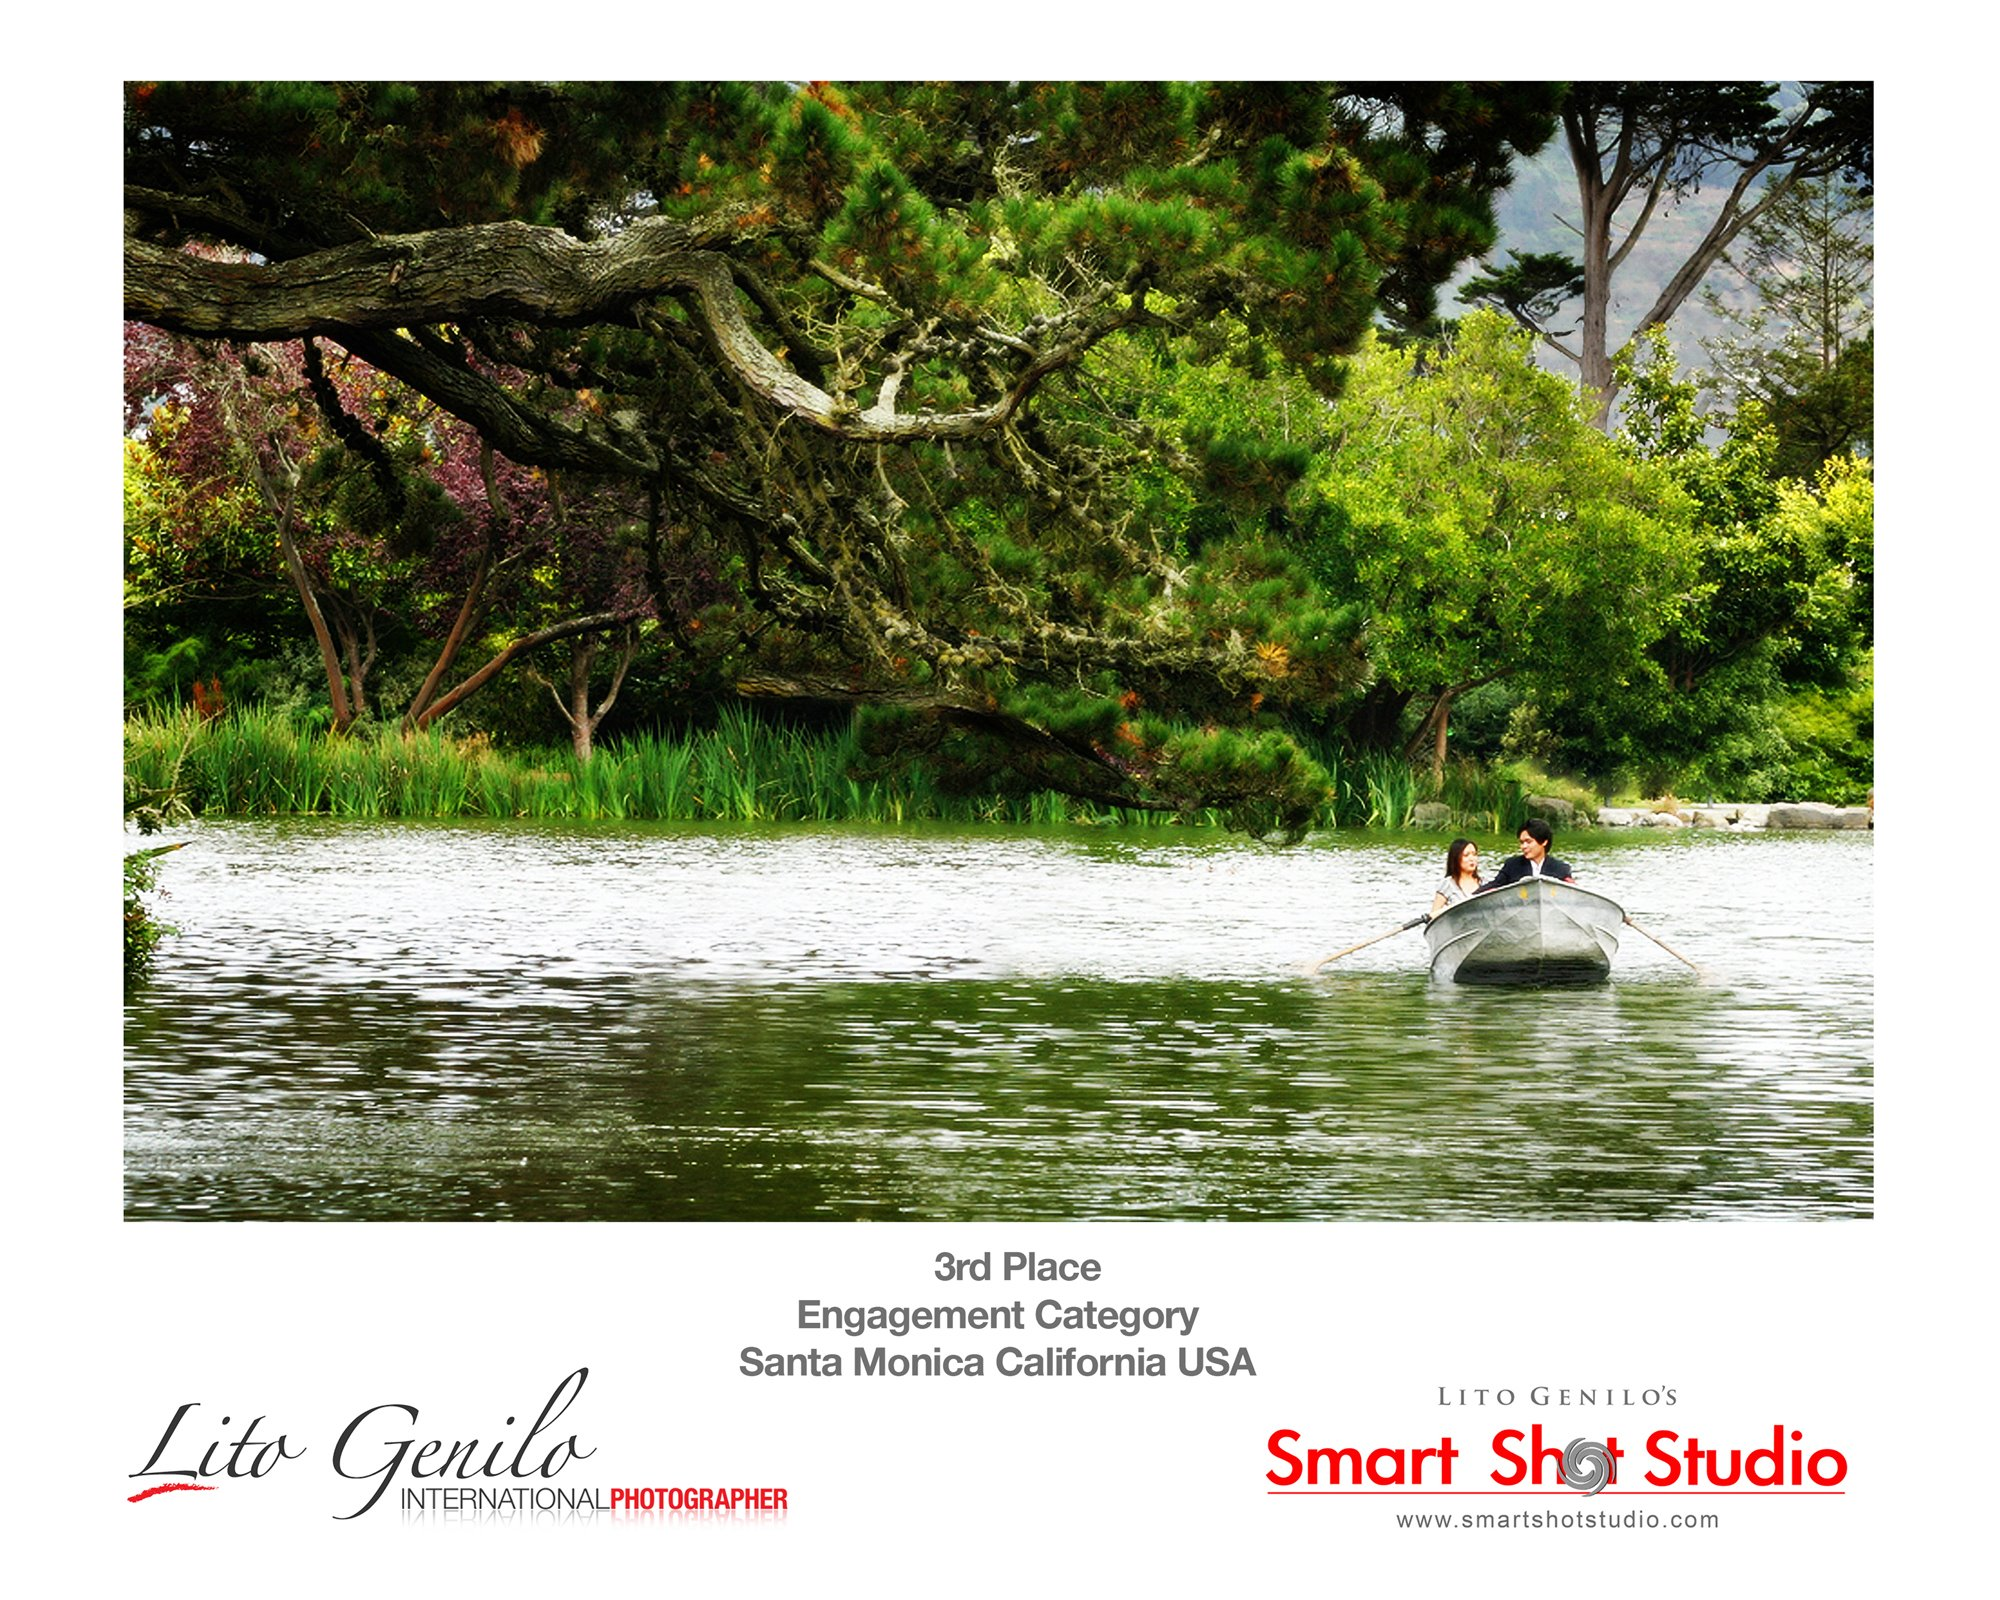 smart shot studio santa monica california usa